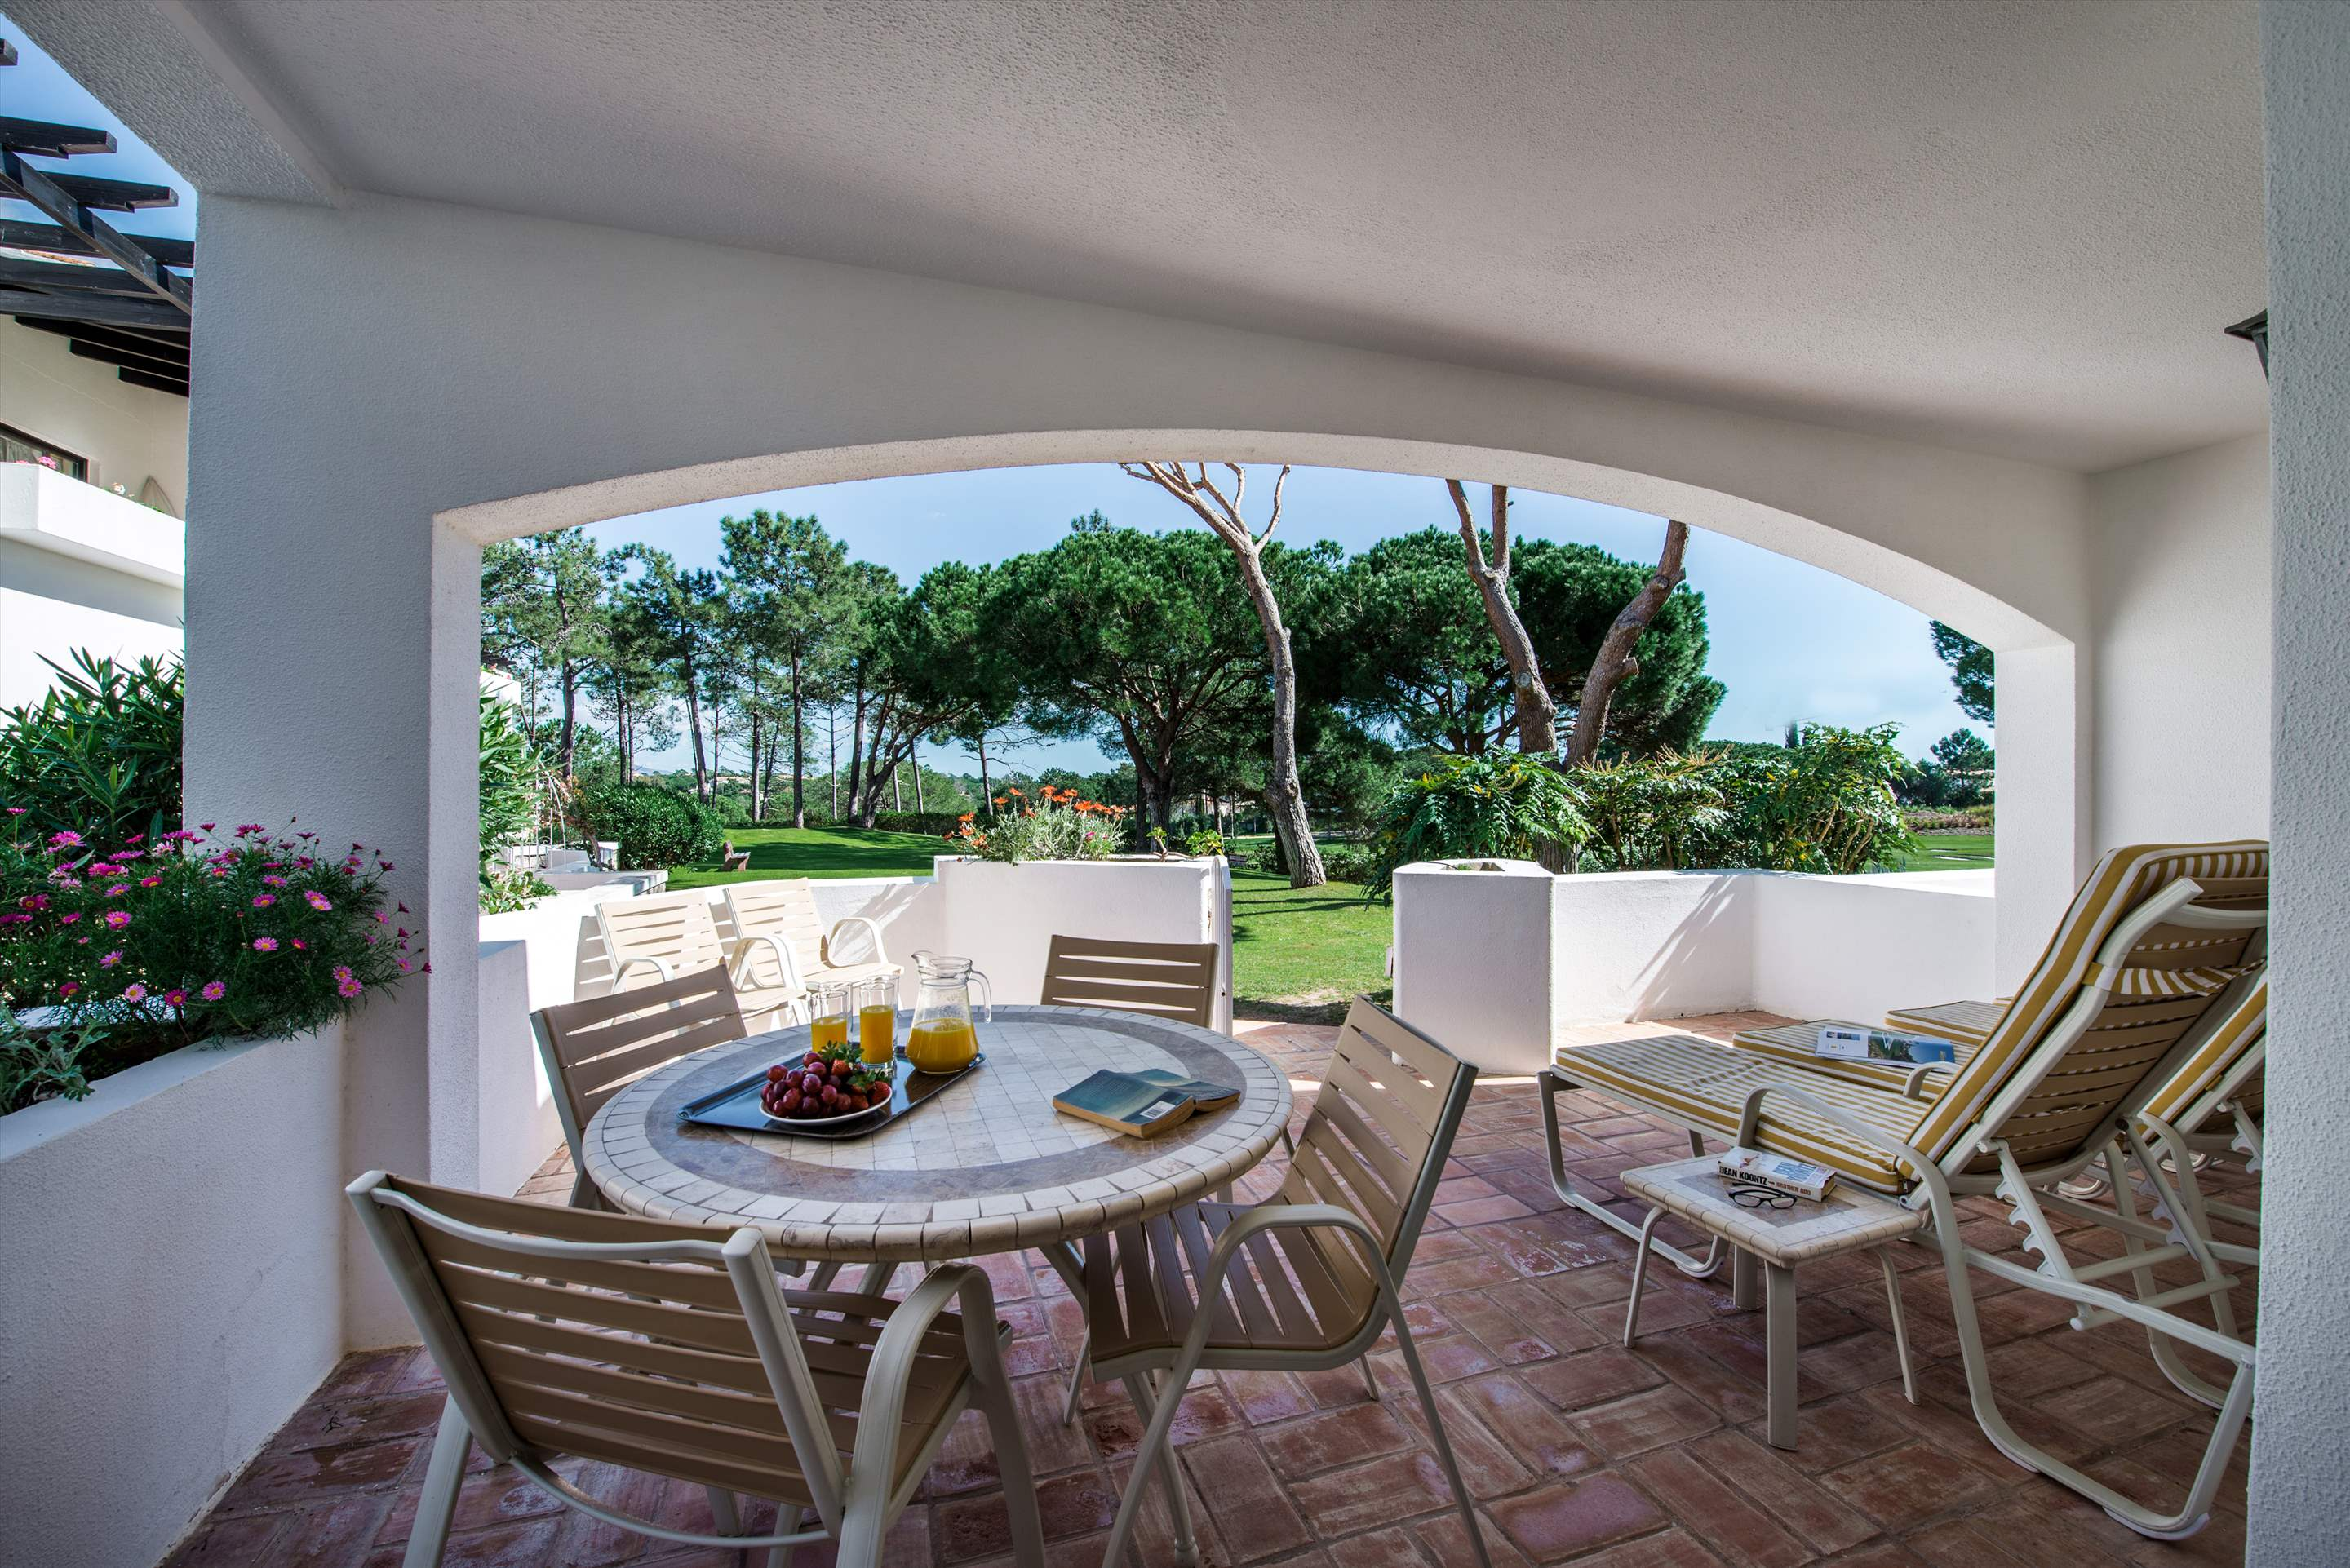 Four Seasons Country Club 1 bed, Superior - Sunday Arrival, 1 bedroom apartment in Four Seasons Country Club, Algarve Photo #2